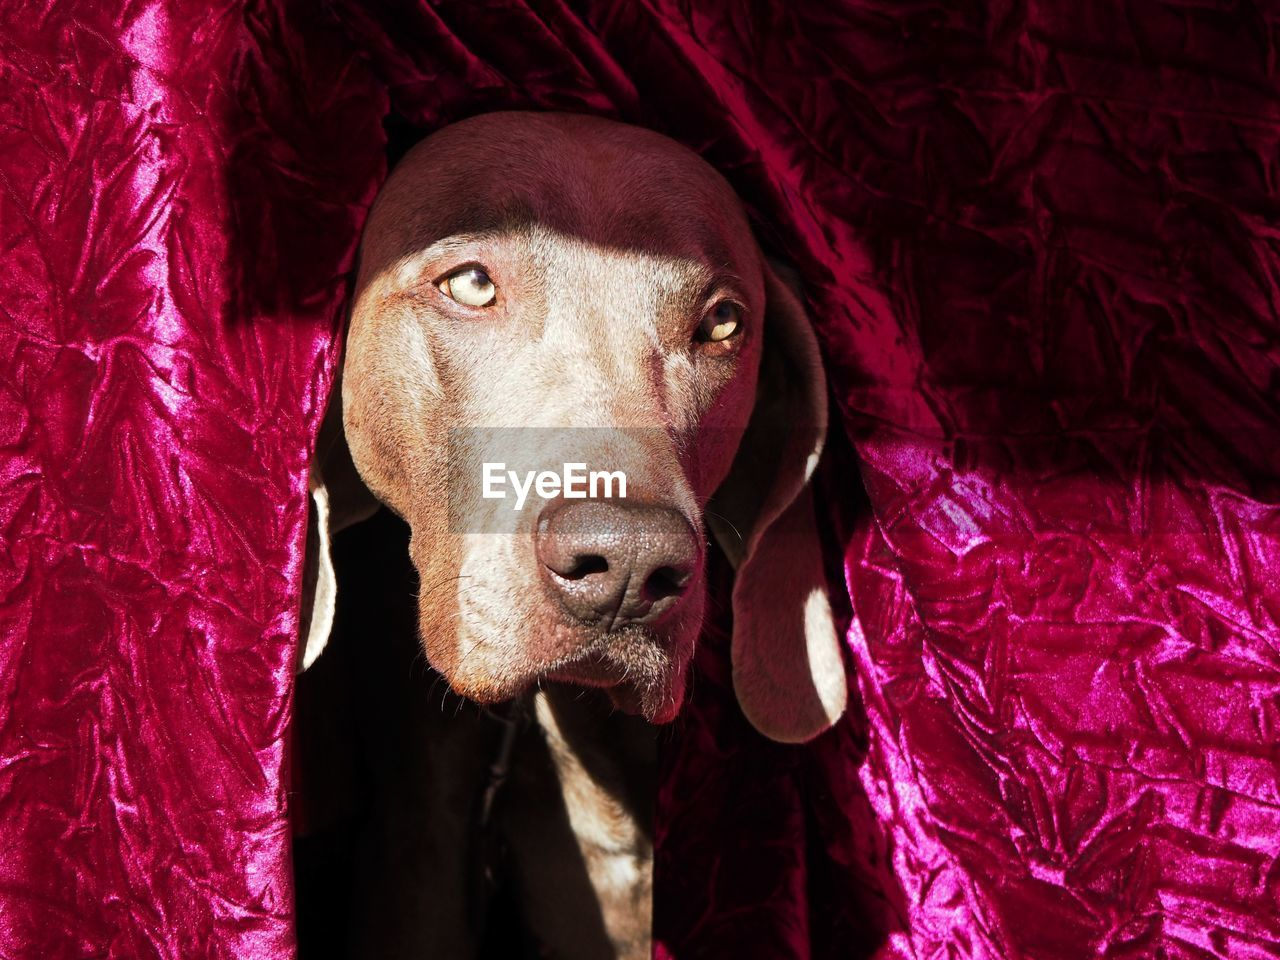 mammal, one animal, pets, domestic animals, domestic, animal themes, animal, dog, canine, looking at camera, vertebrate, portrait, indoors, no people, close-up, textile, animal body part, high angle view, furniture, red, animal head, weimaraner